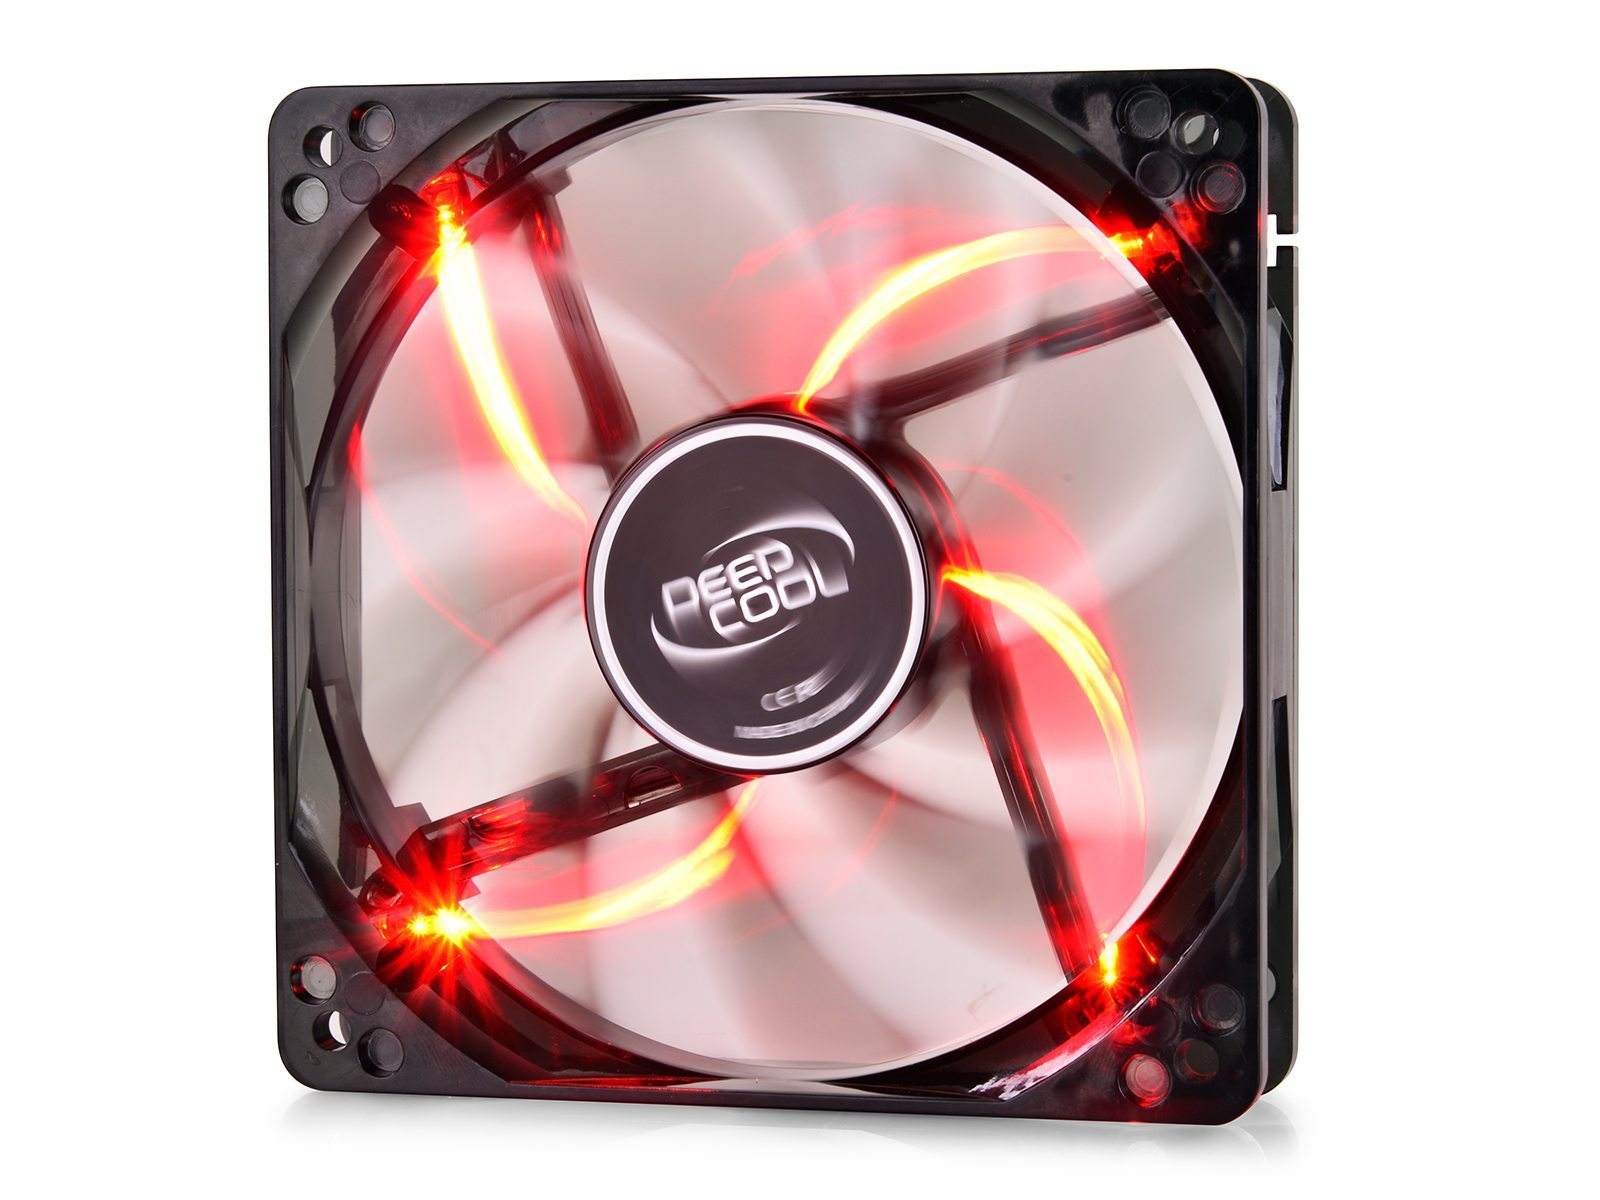 DeepCool Fan 120mm Red LED - WIND BLADE 120 - 1300rpm